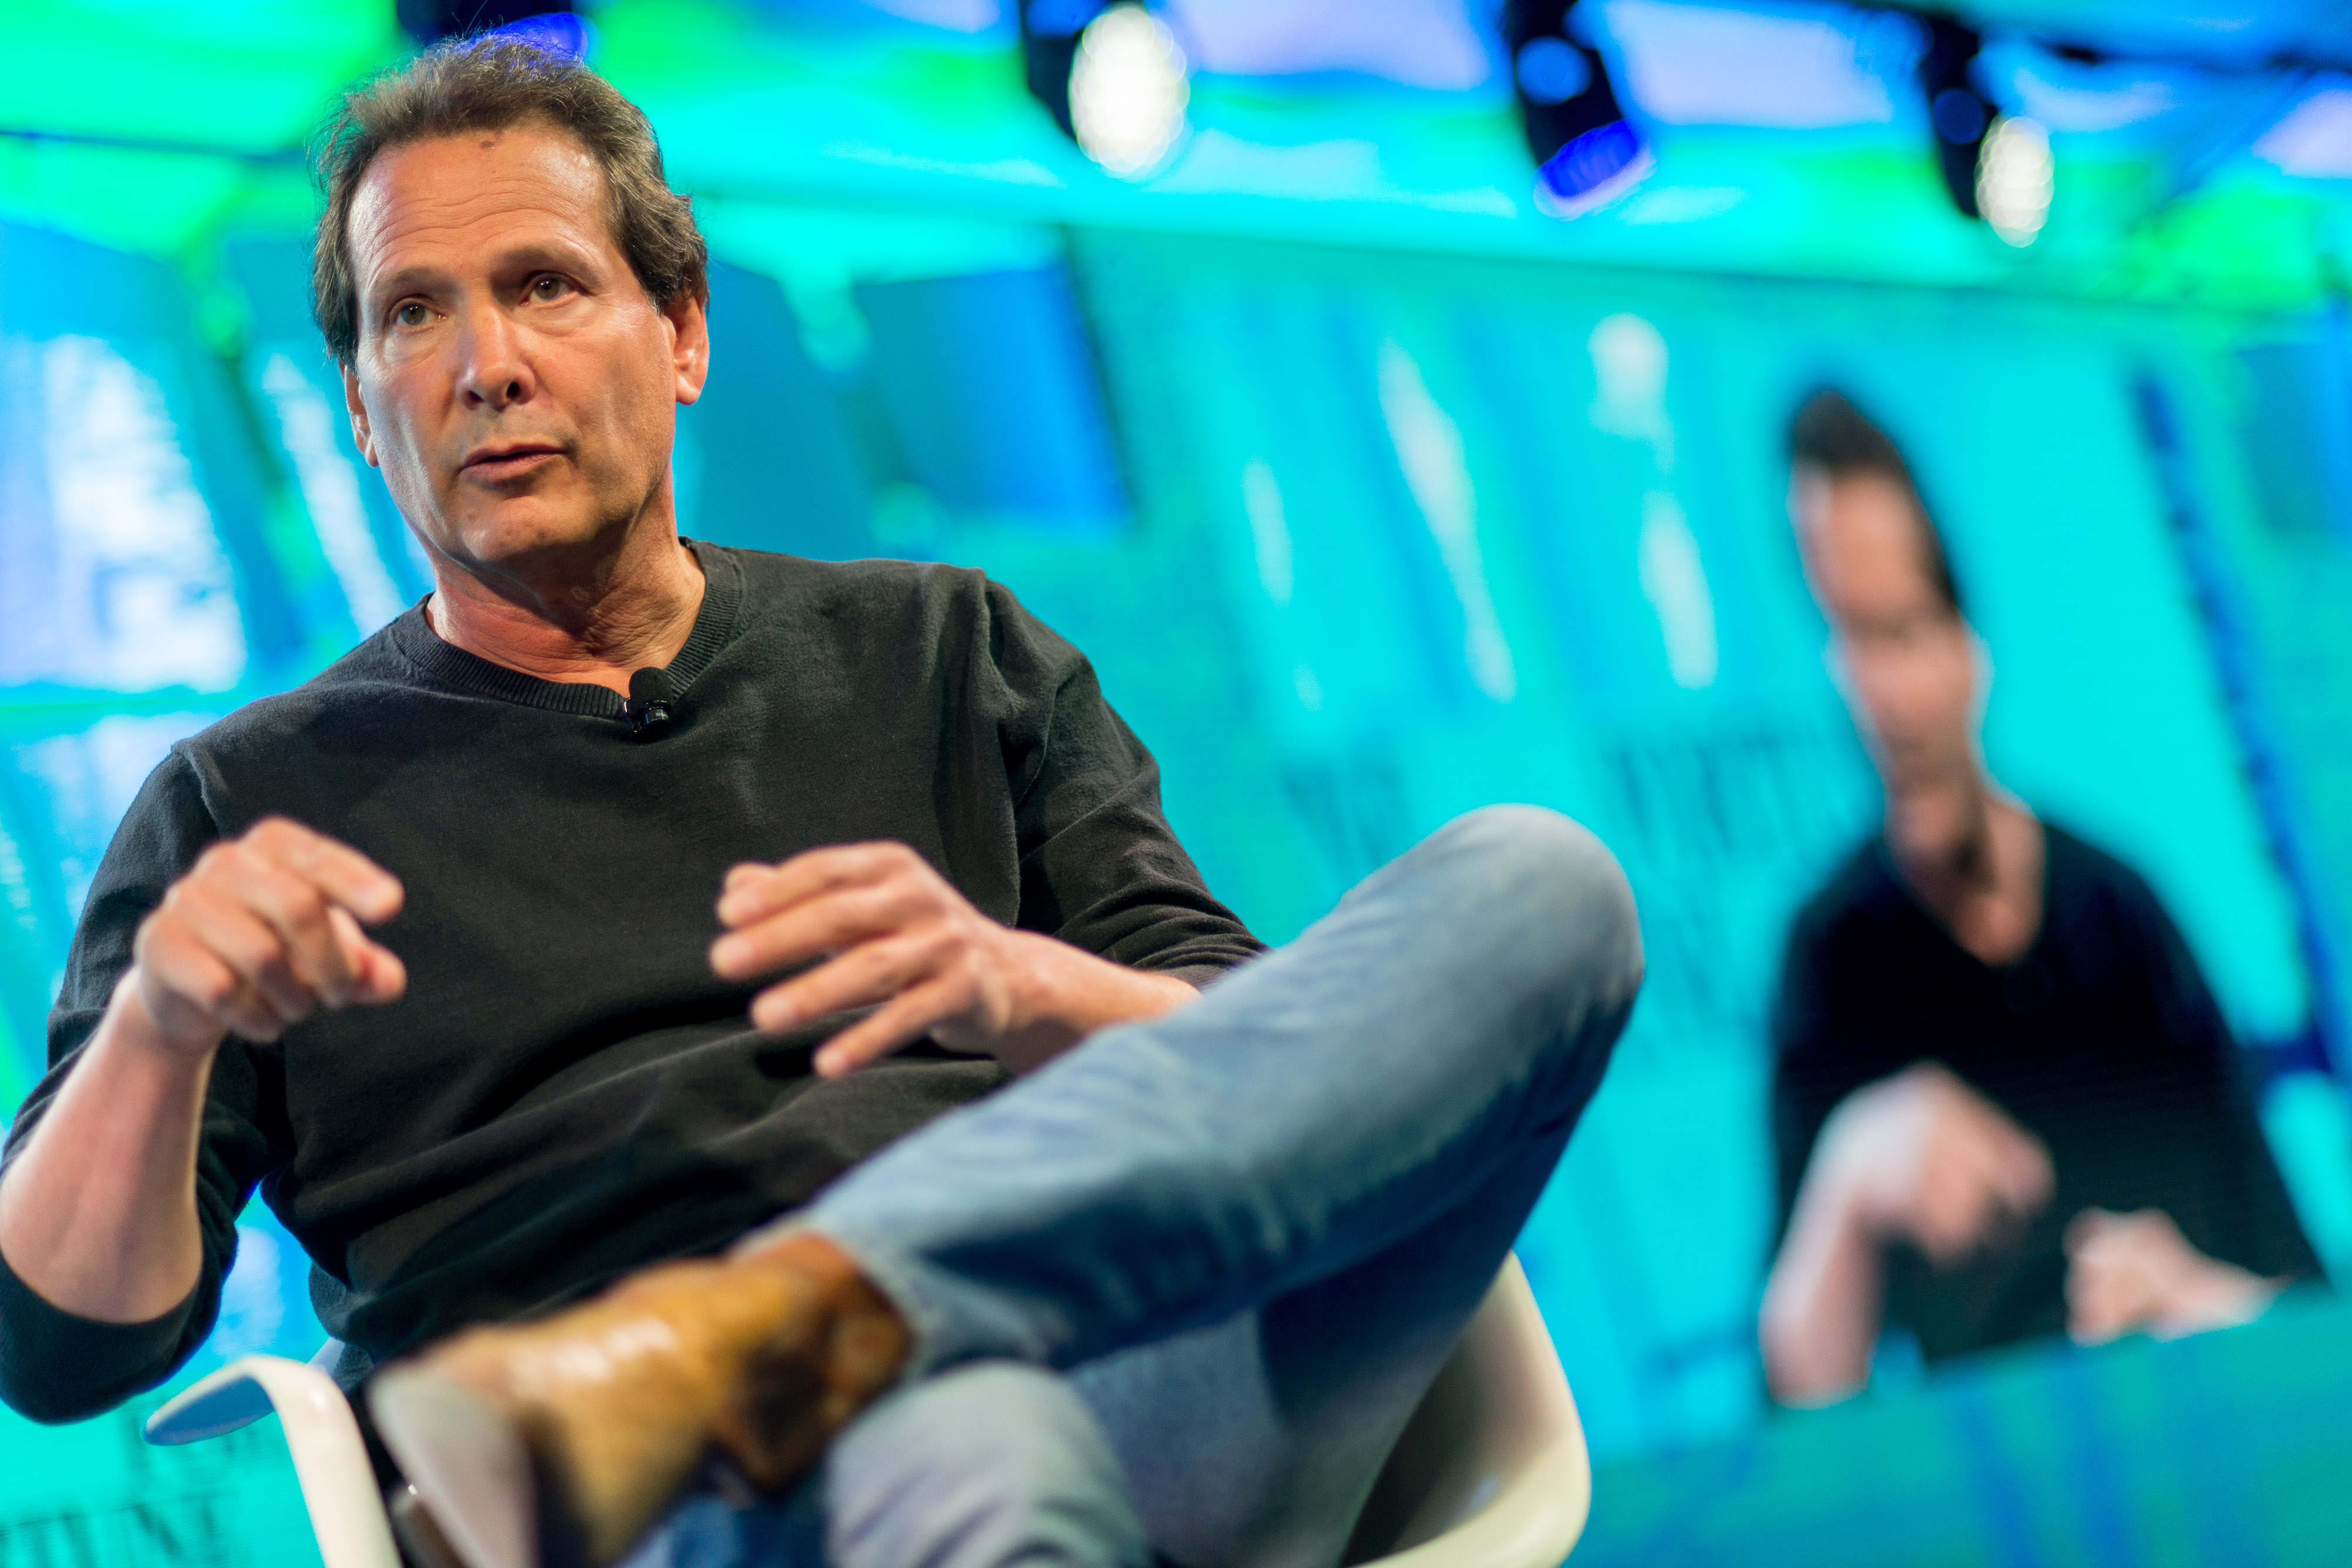 Paypal CEO Dan Schulman at Fortune Brainstorm TECH 2016